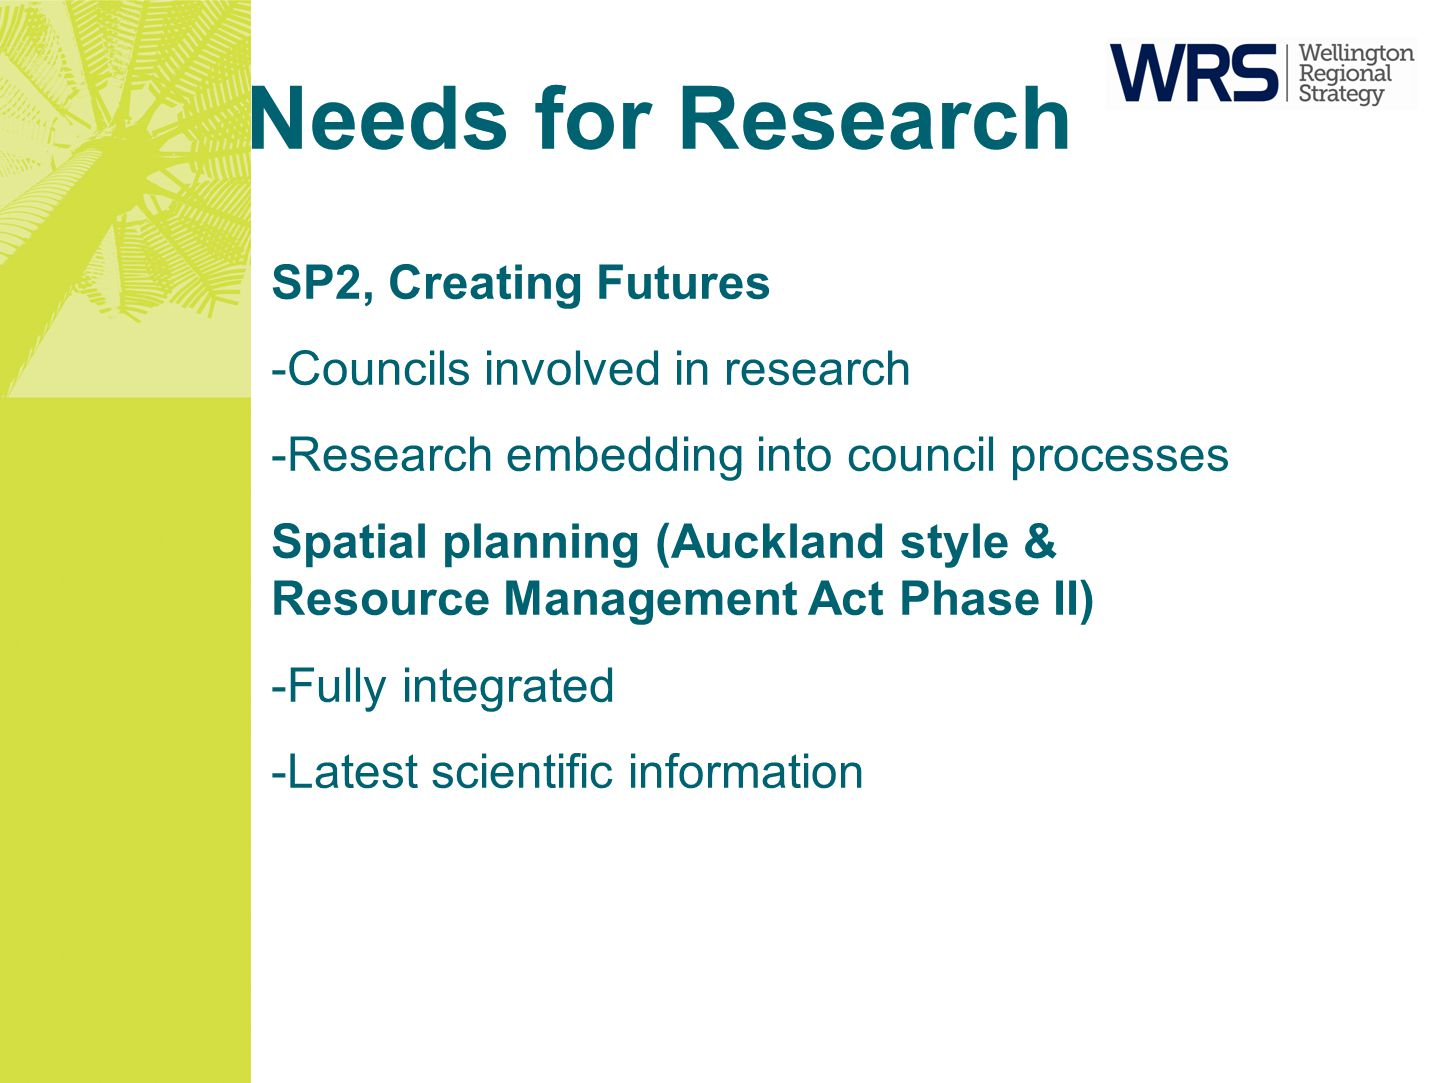 Needs for Research SP2, Creating Futures -Councils involved in research -Research embedding into council processes Spatial planning (Auckland style & Resource Management Act Phase II) -Fully integrated -Latest scientific information